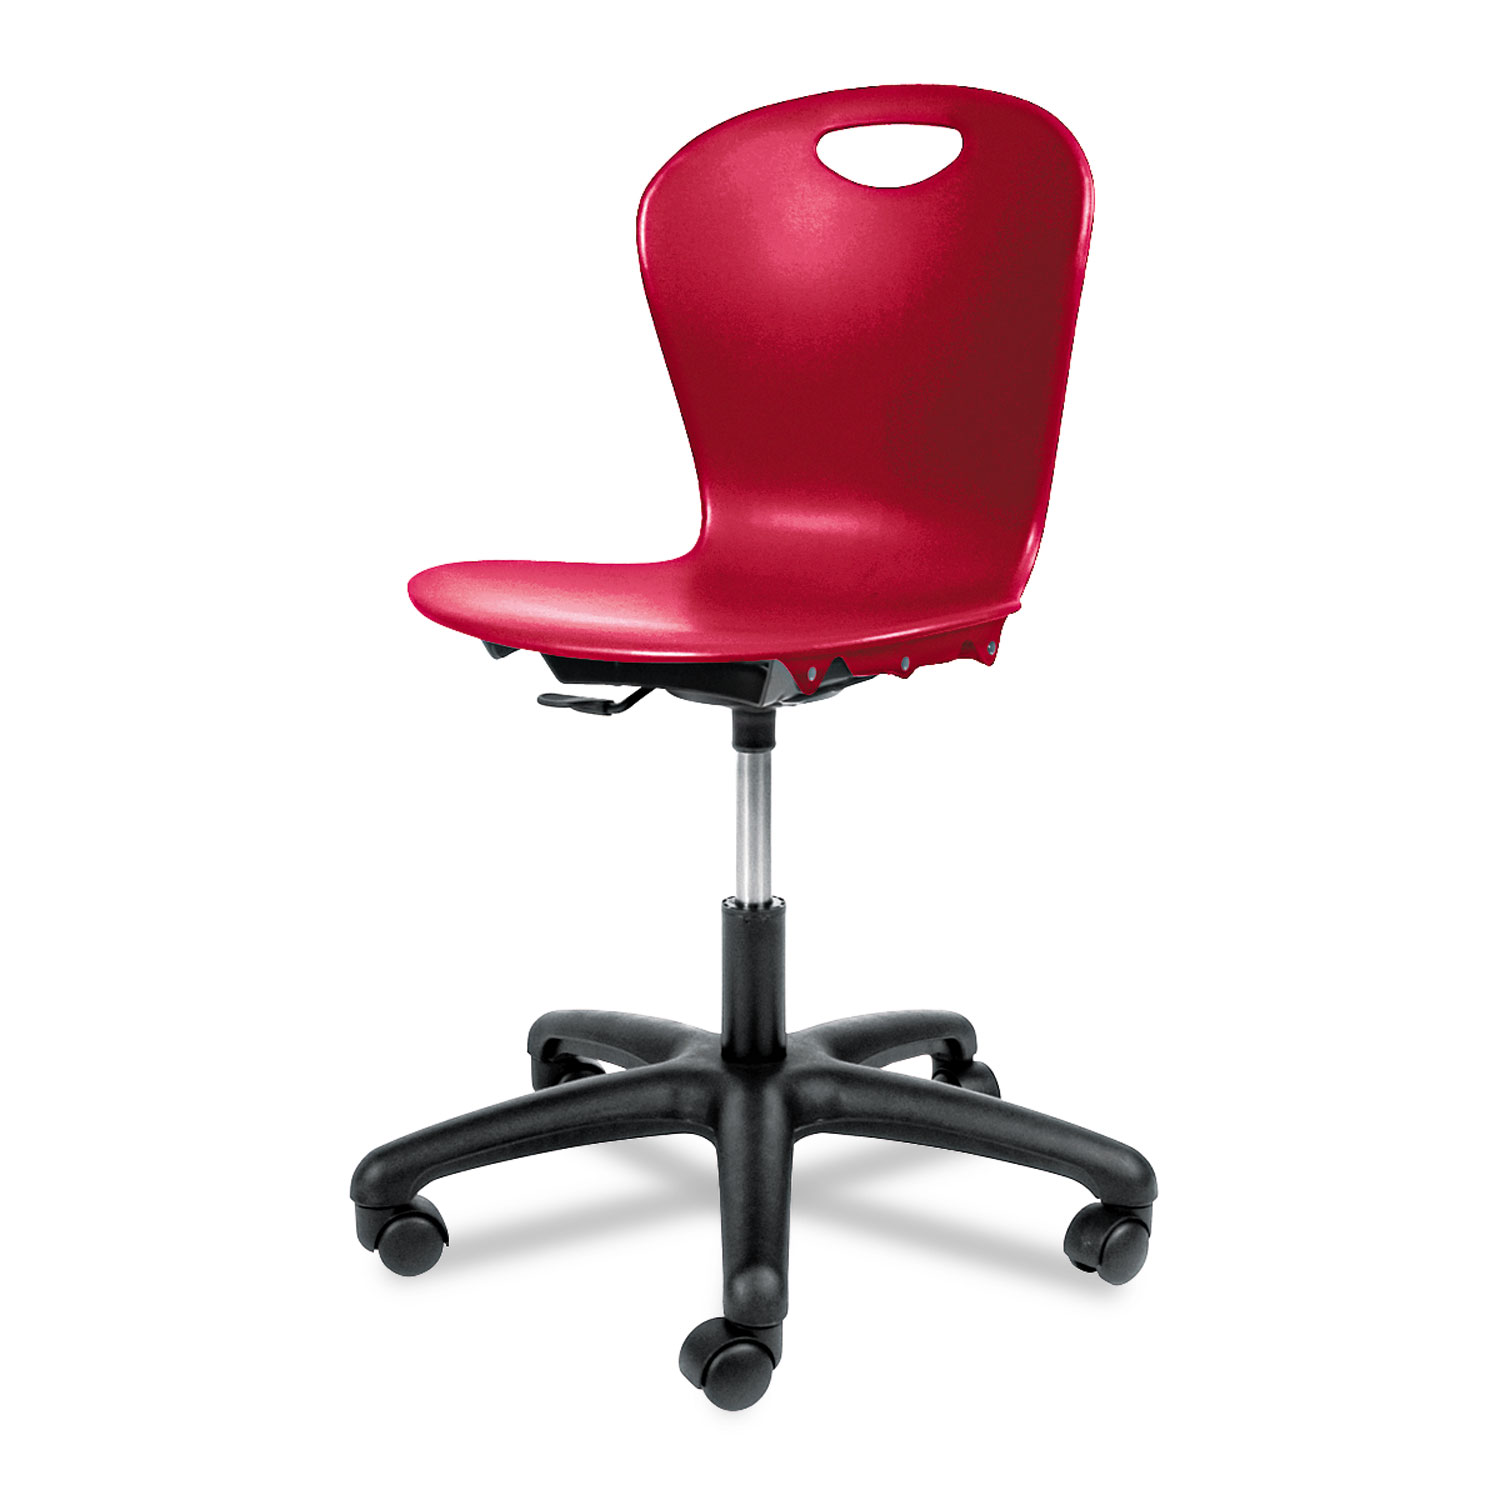 Adjustable Height Task Chair, Red Seat/Red Back, Black Base